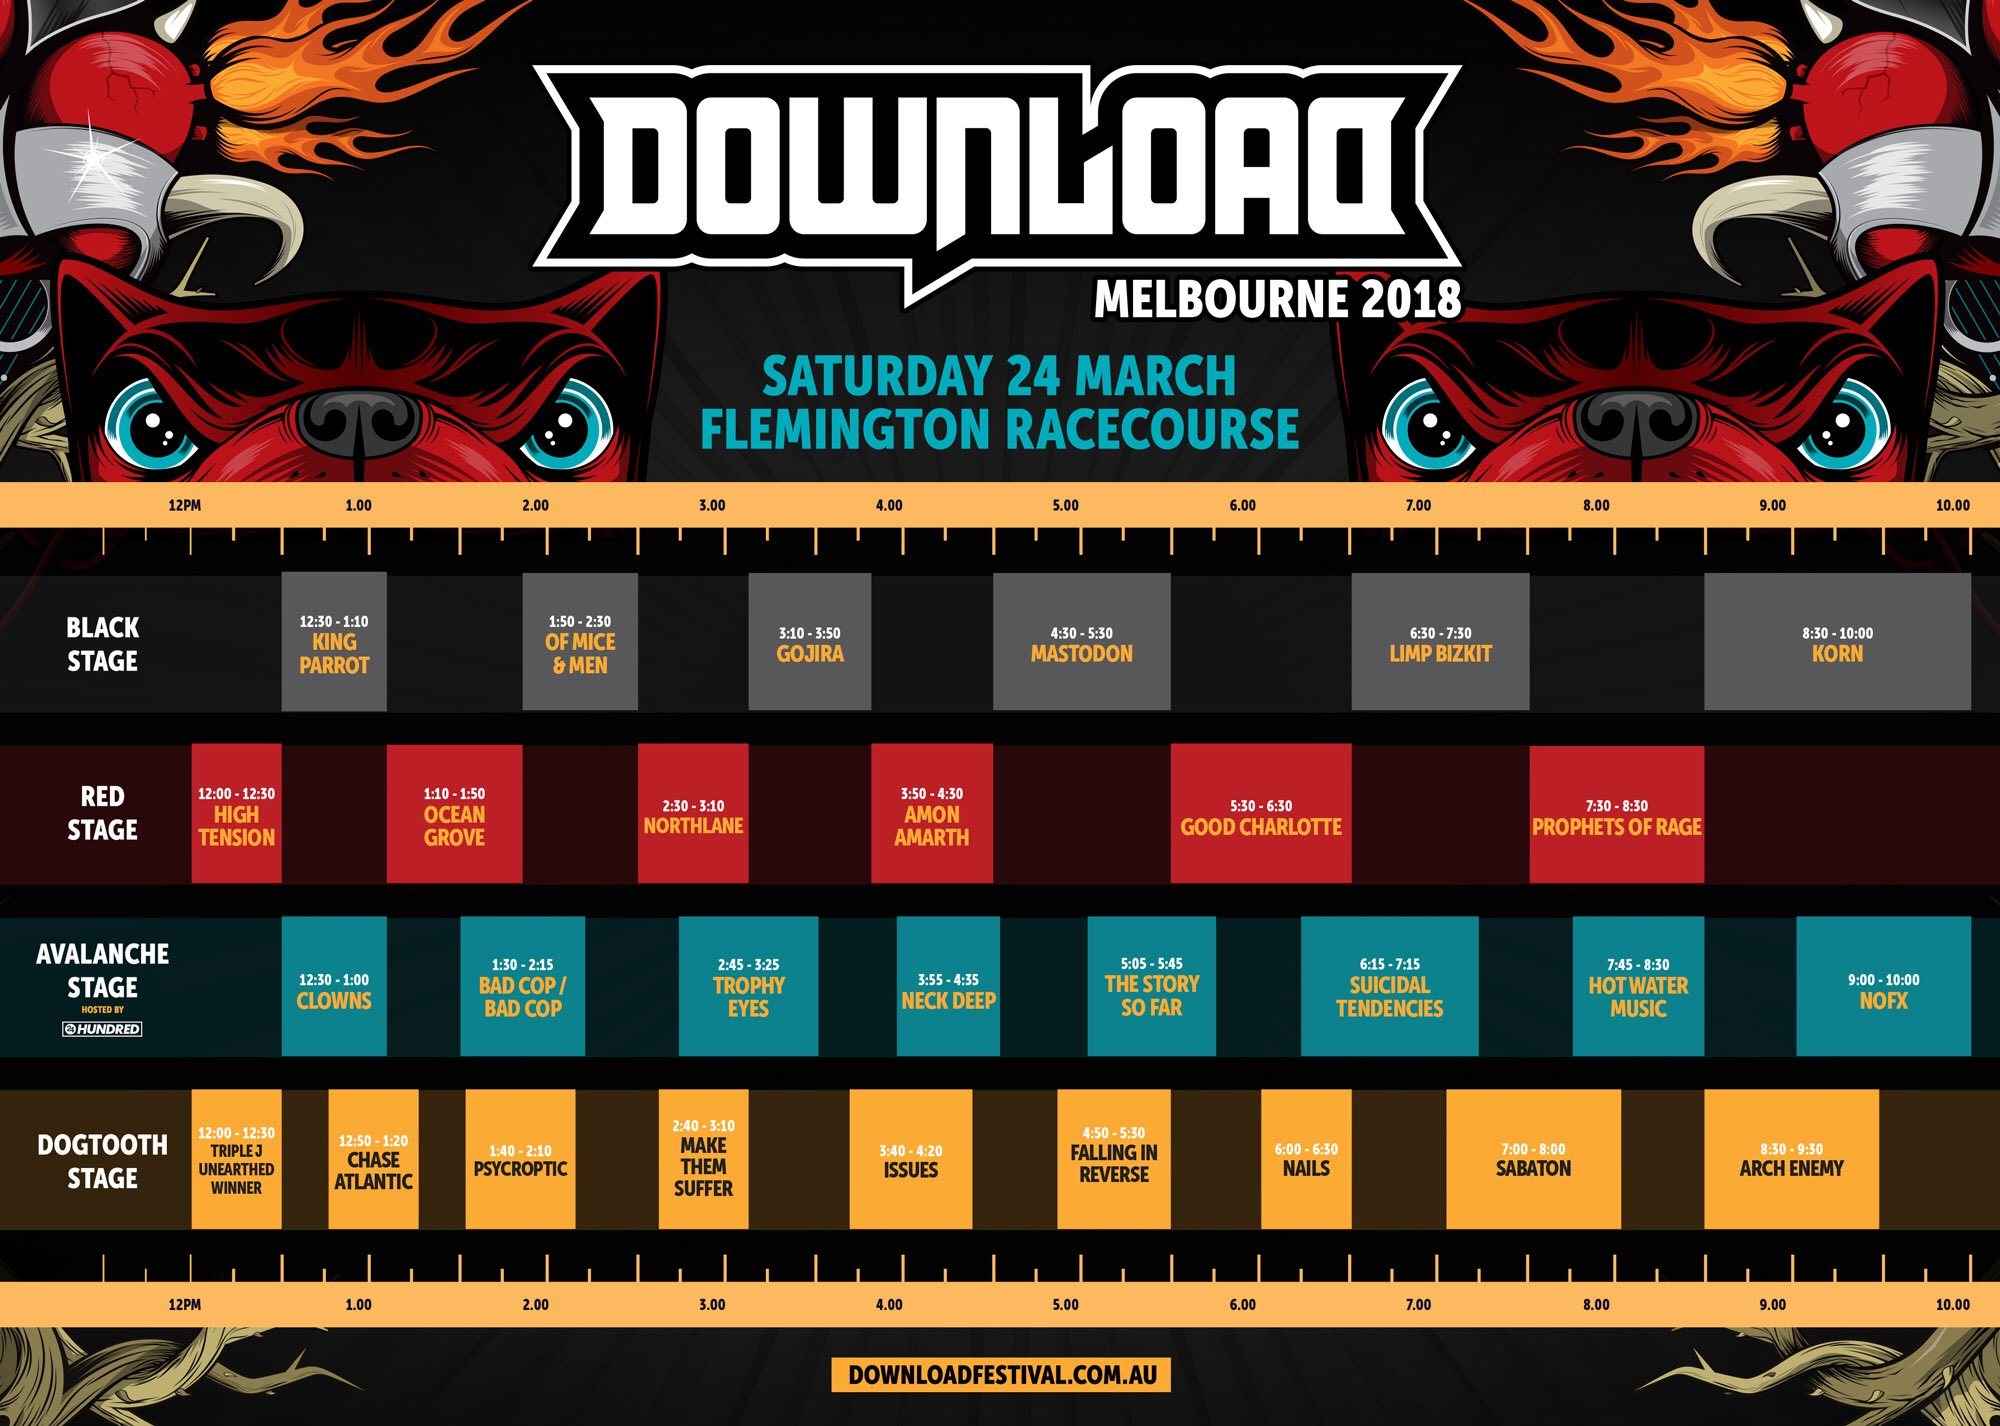 Download Festival set times